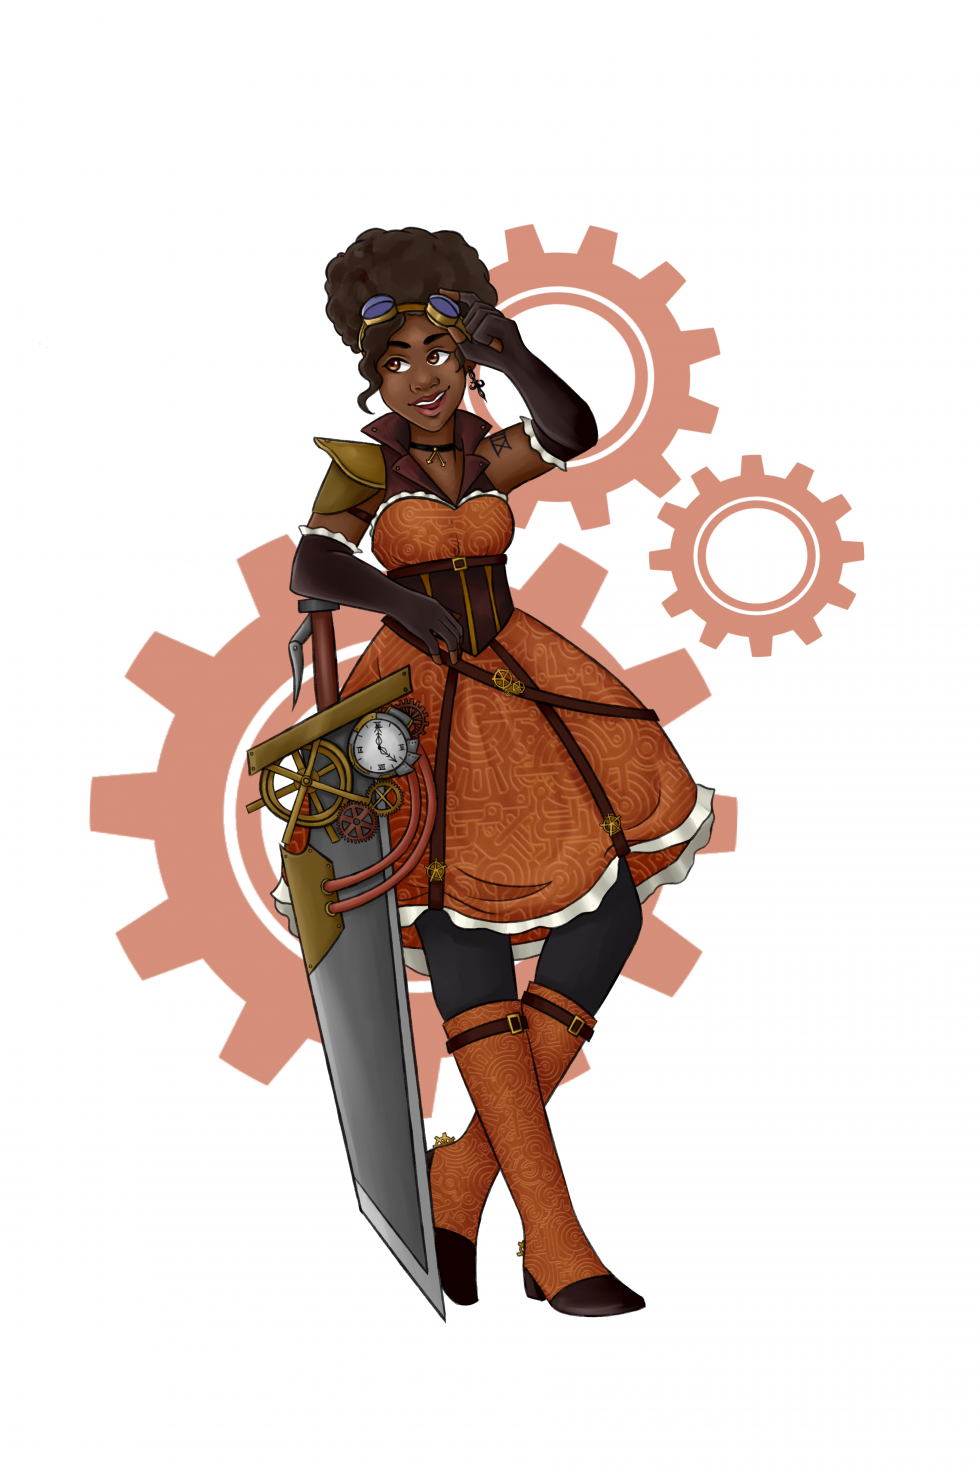 Girl in an orange dress leaning on a large sword with an orange background image of gears